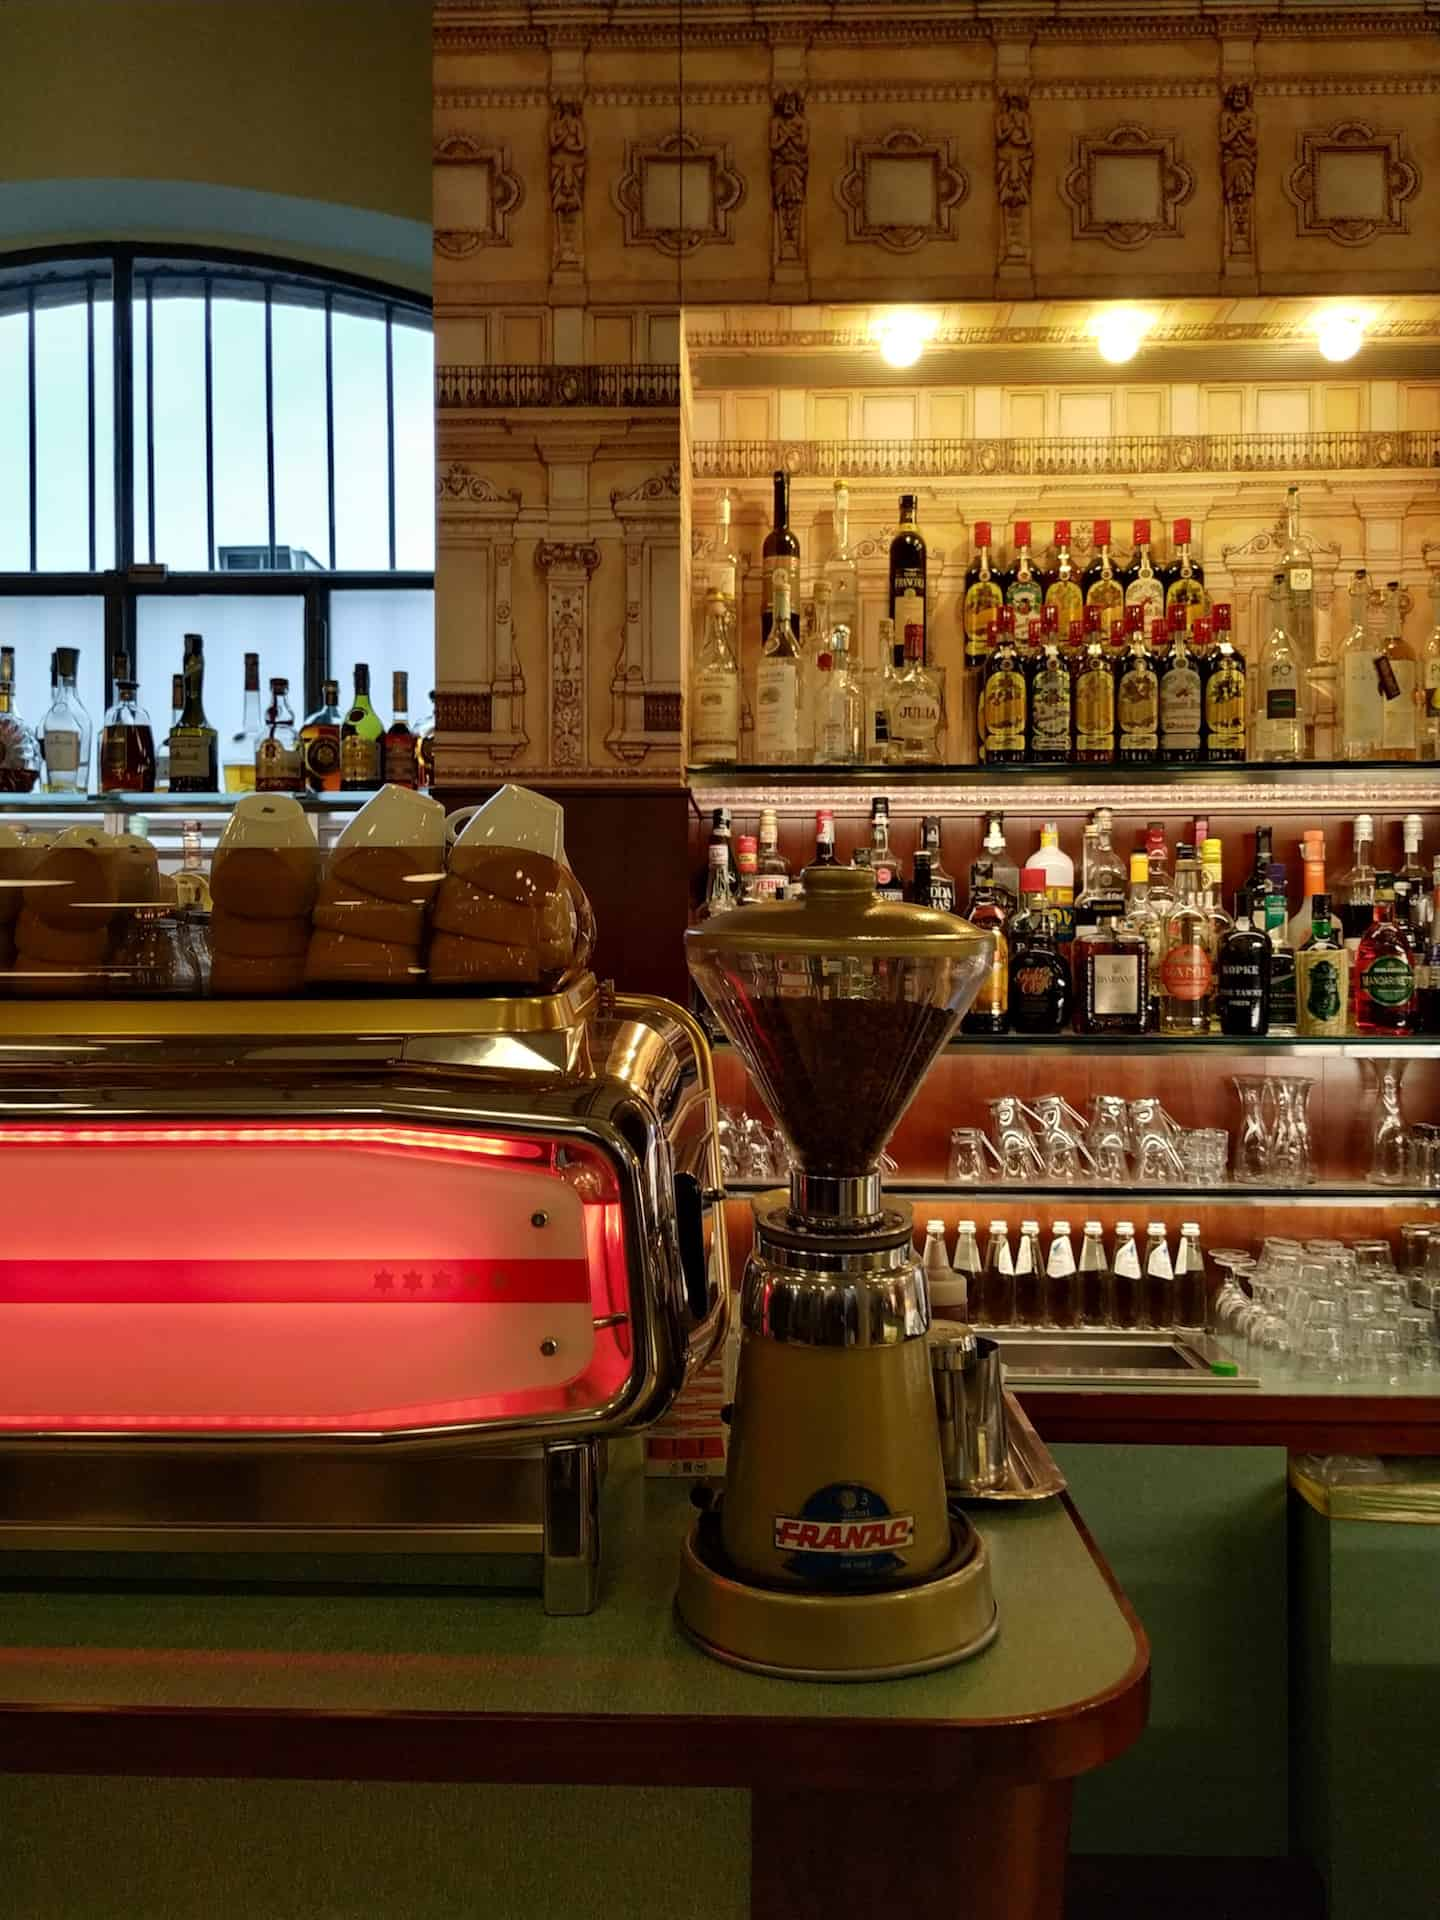 Bar Luce in the Prada Foundation designed by Wes Anderson